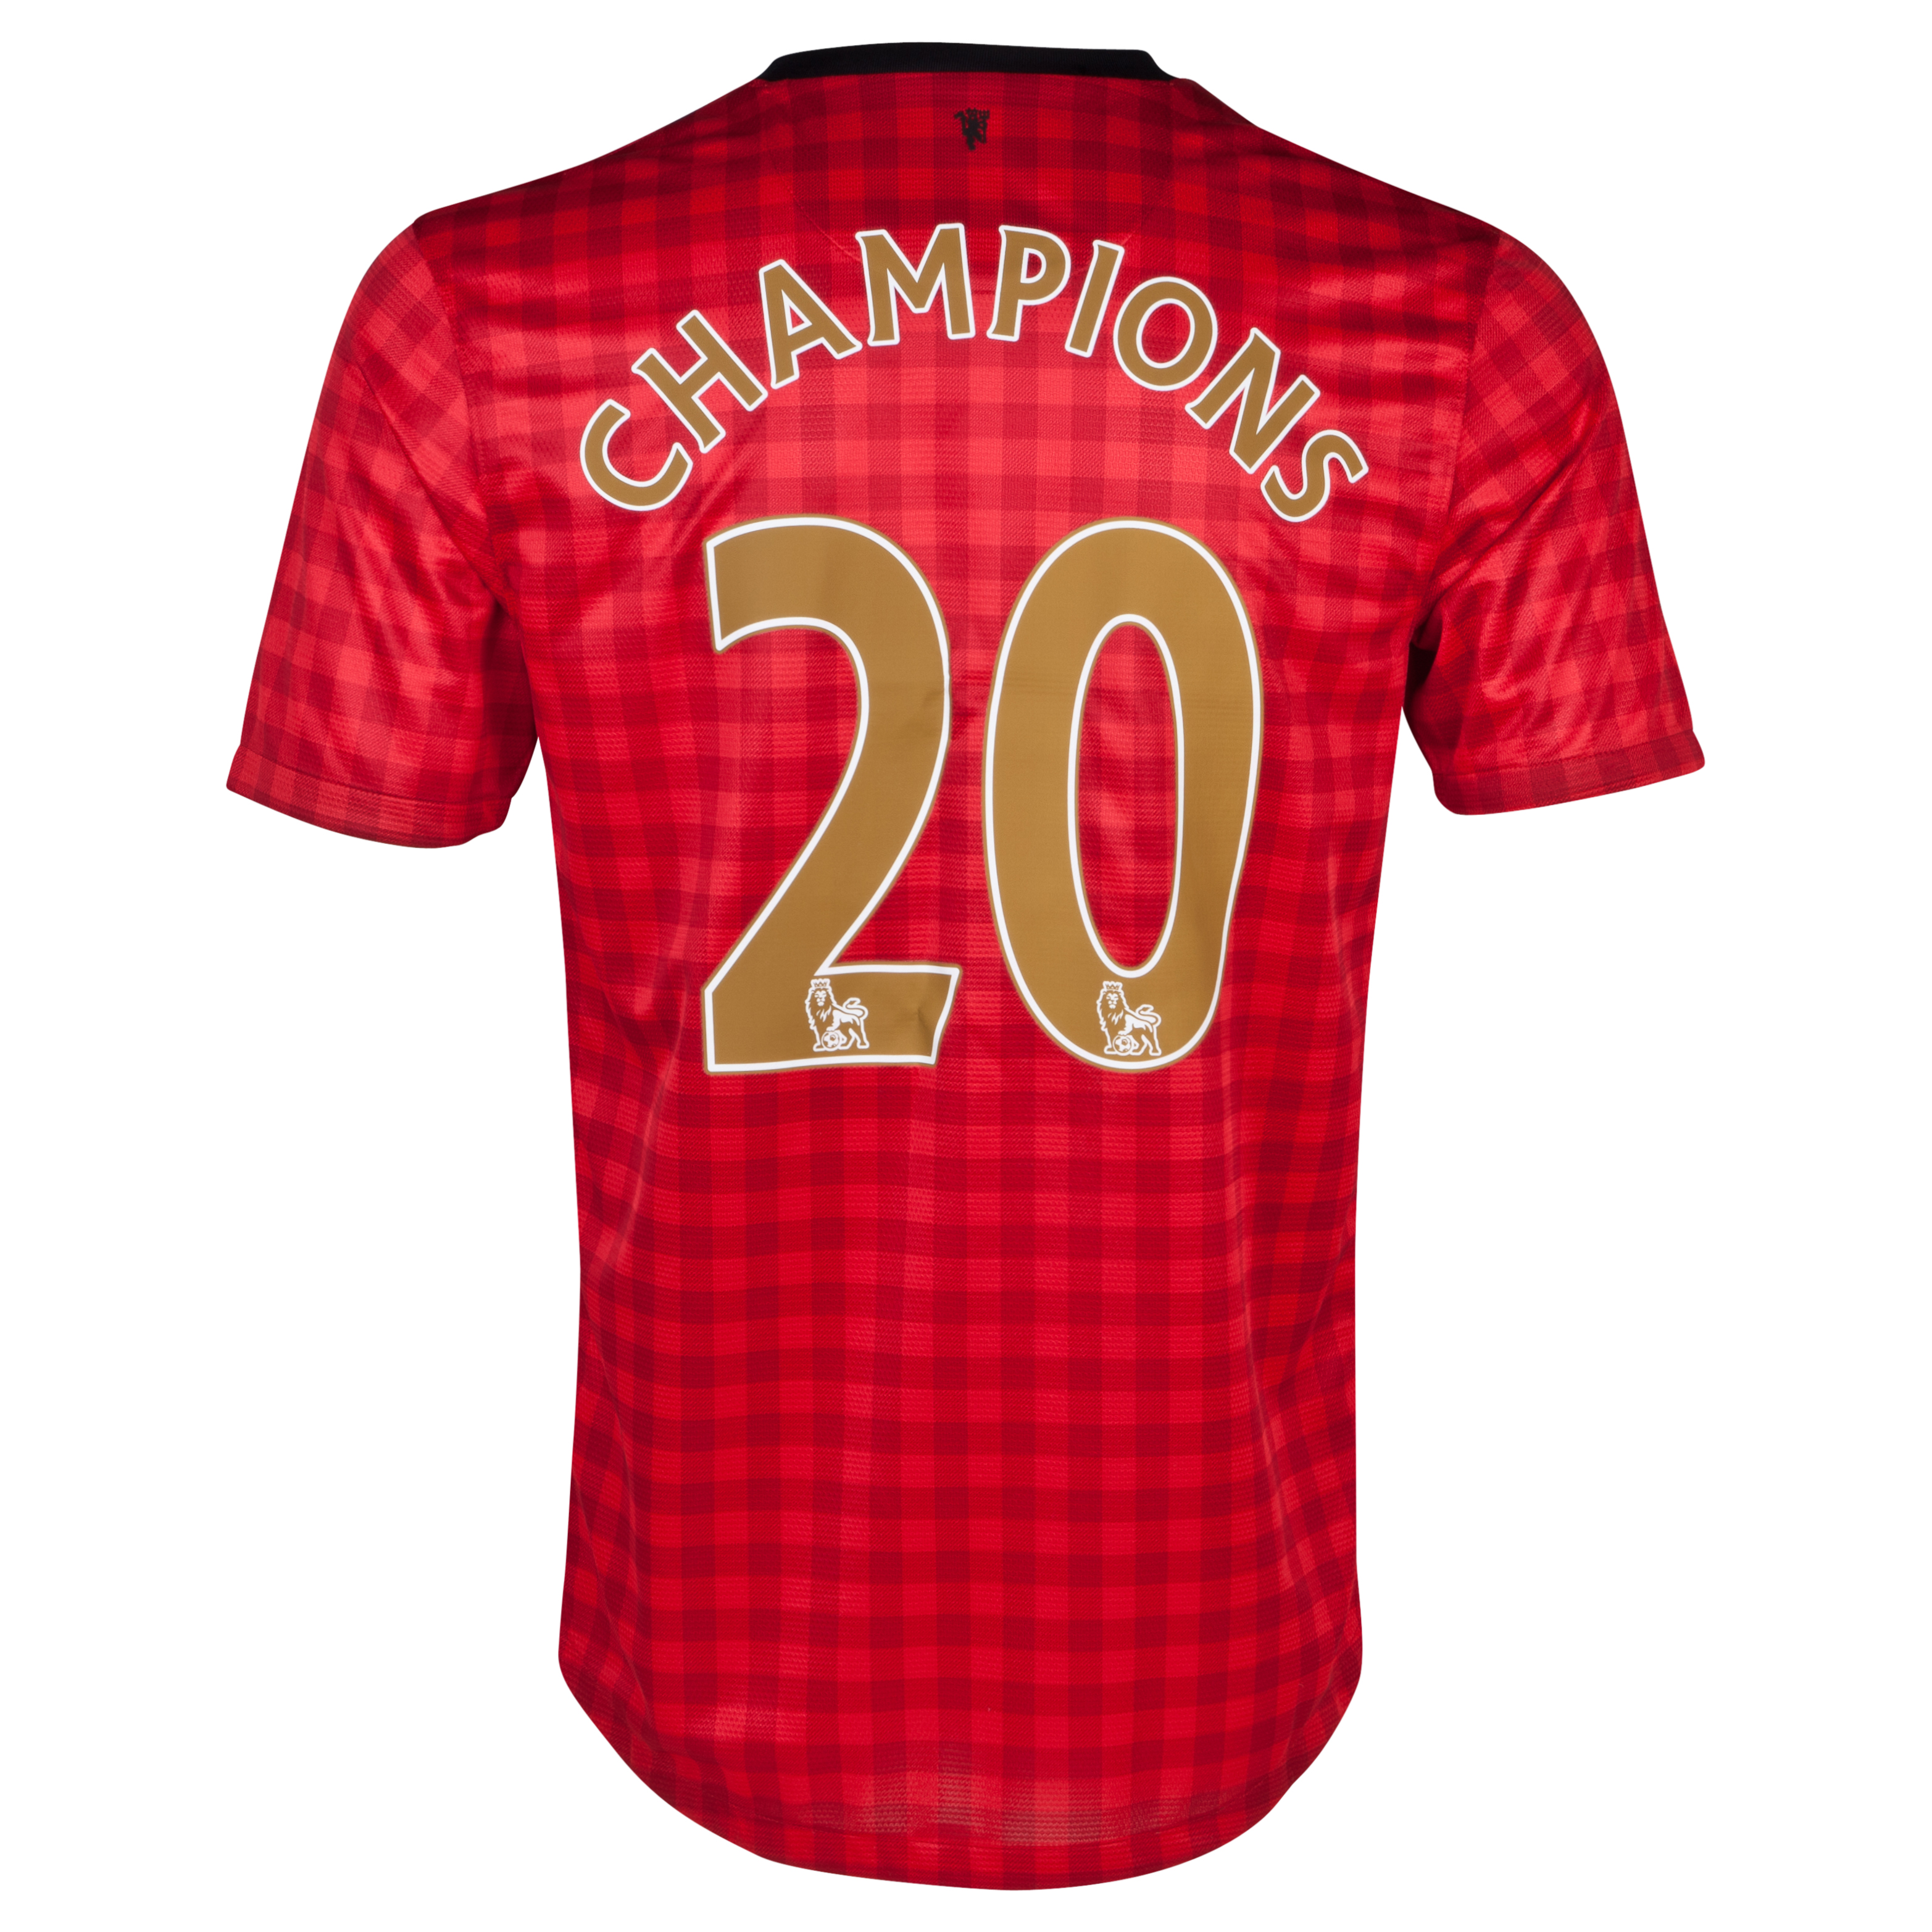 Manchester United Home Shirt 2012/13 with Champions 20 printing